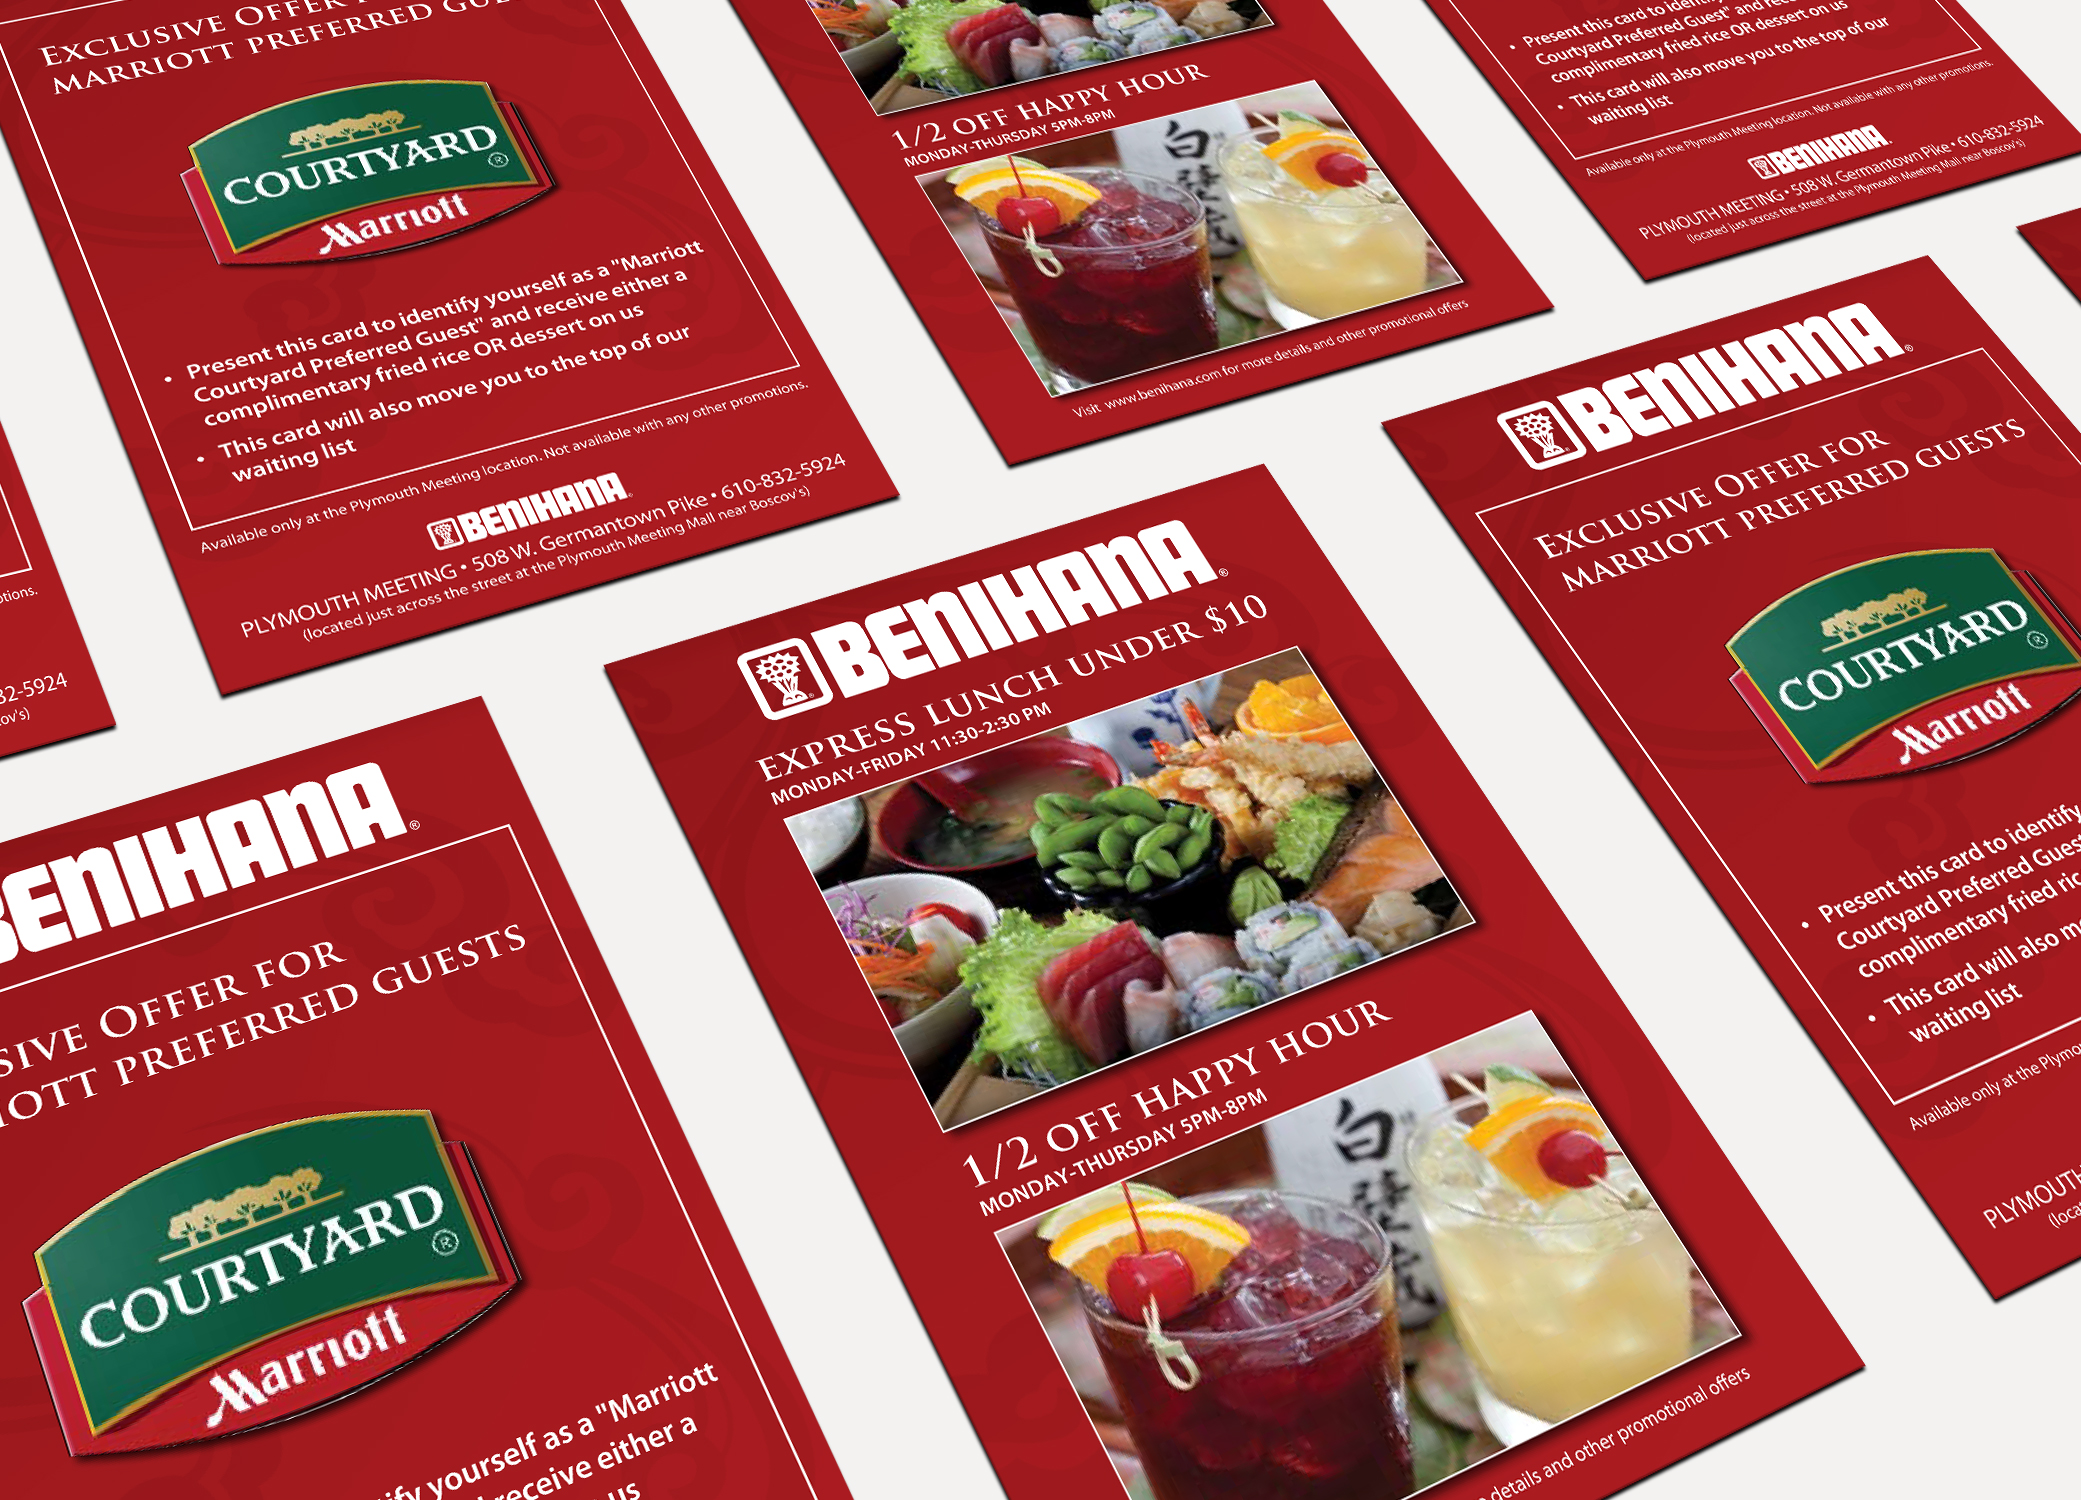 Benihana food brand design flyers for Marriott Preferred Guests arranged in diagonal rows against white backdrop.